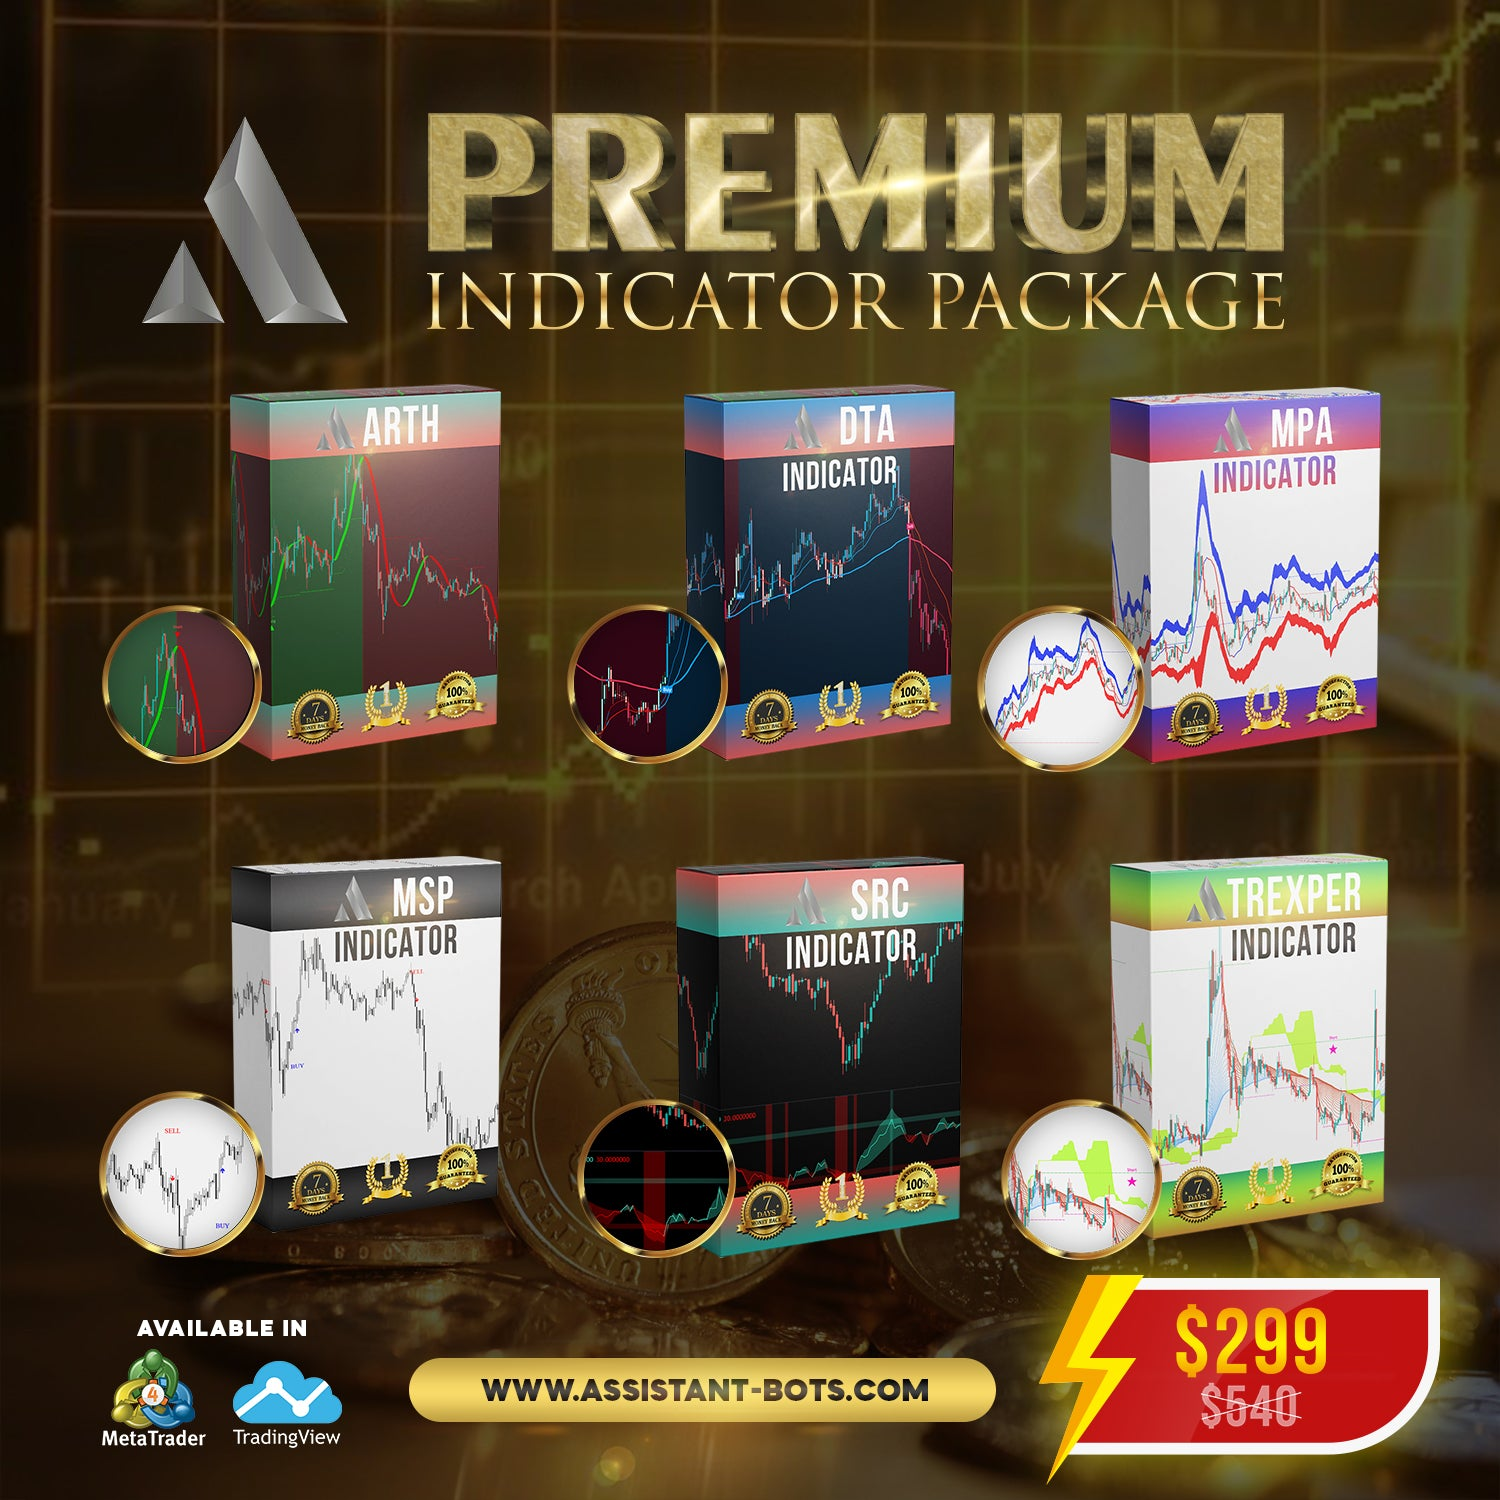 Premium Indicator Package